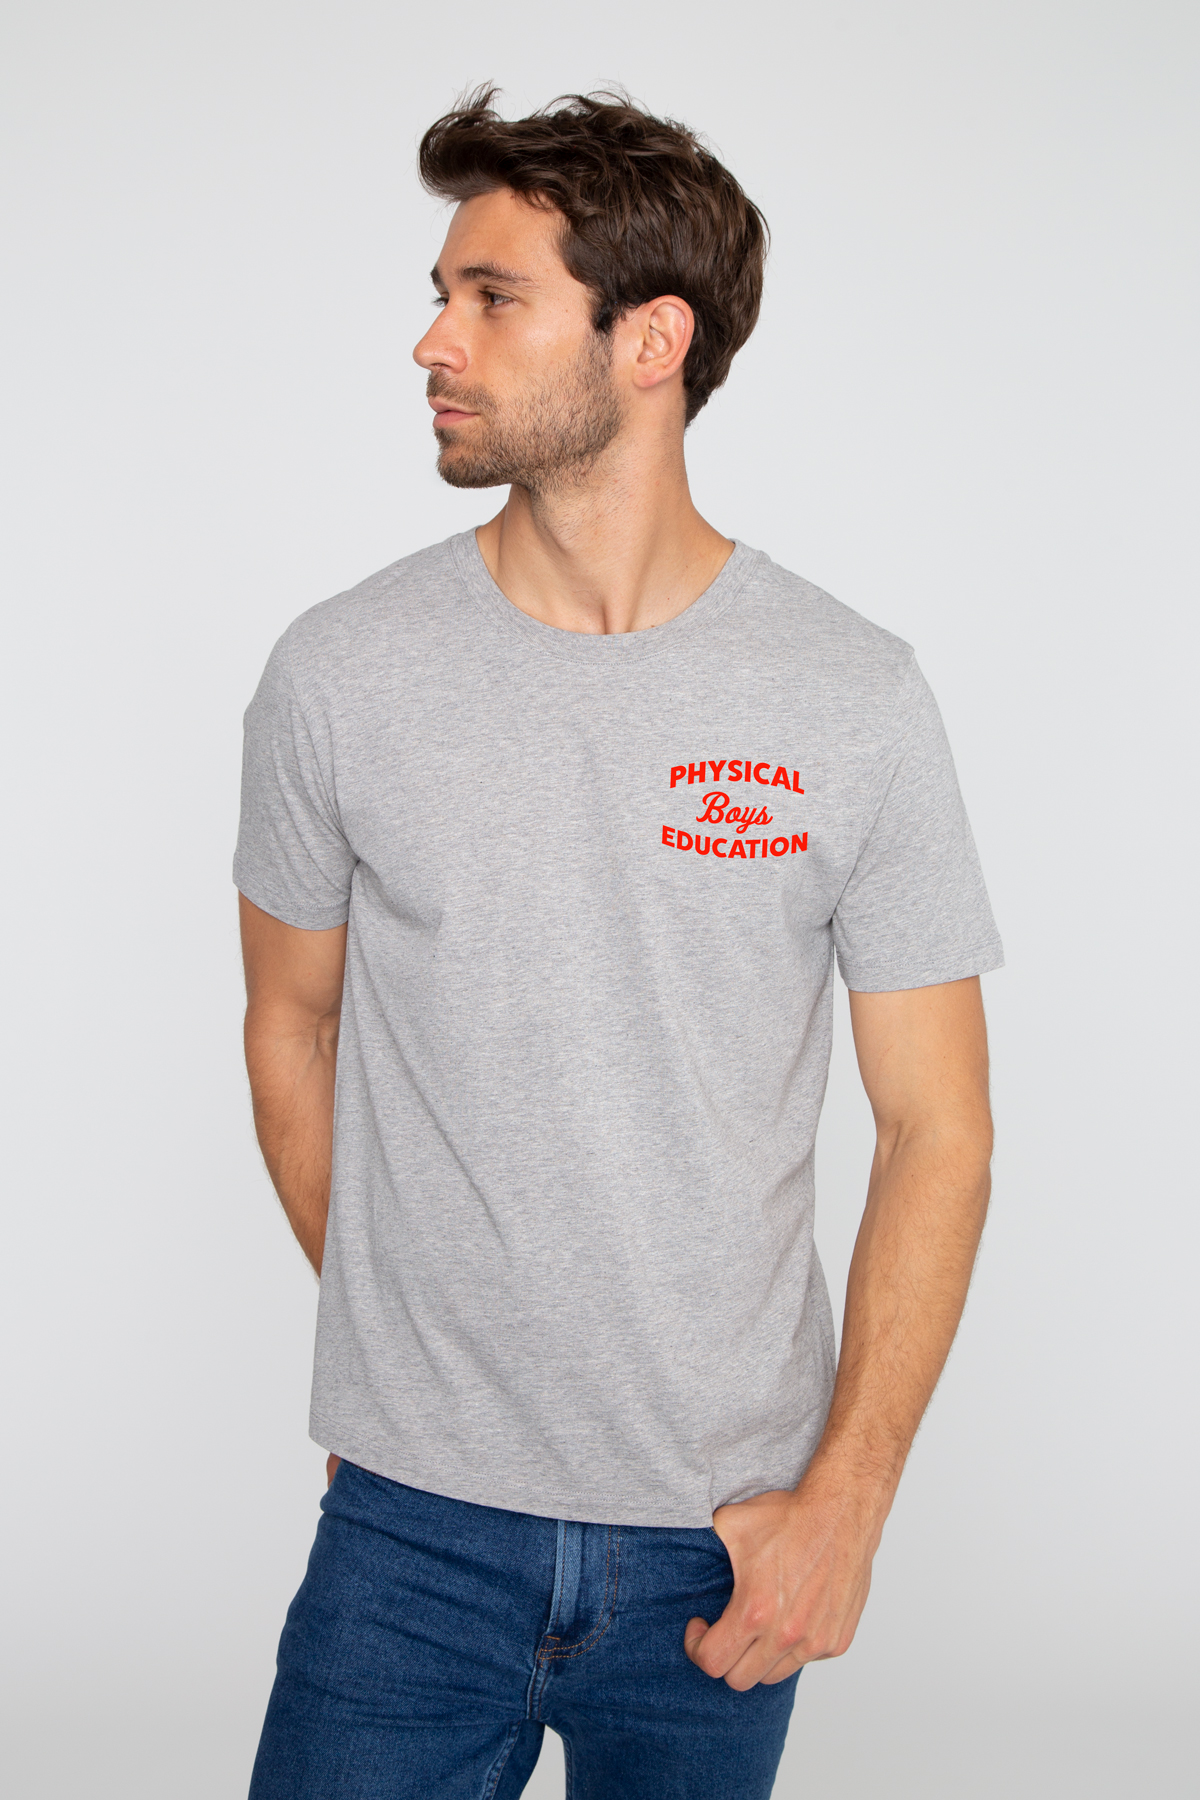 Tshirt PHYSICAL EDUCATION